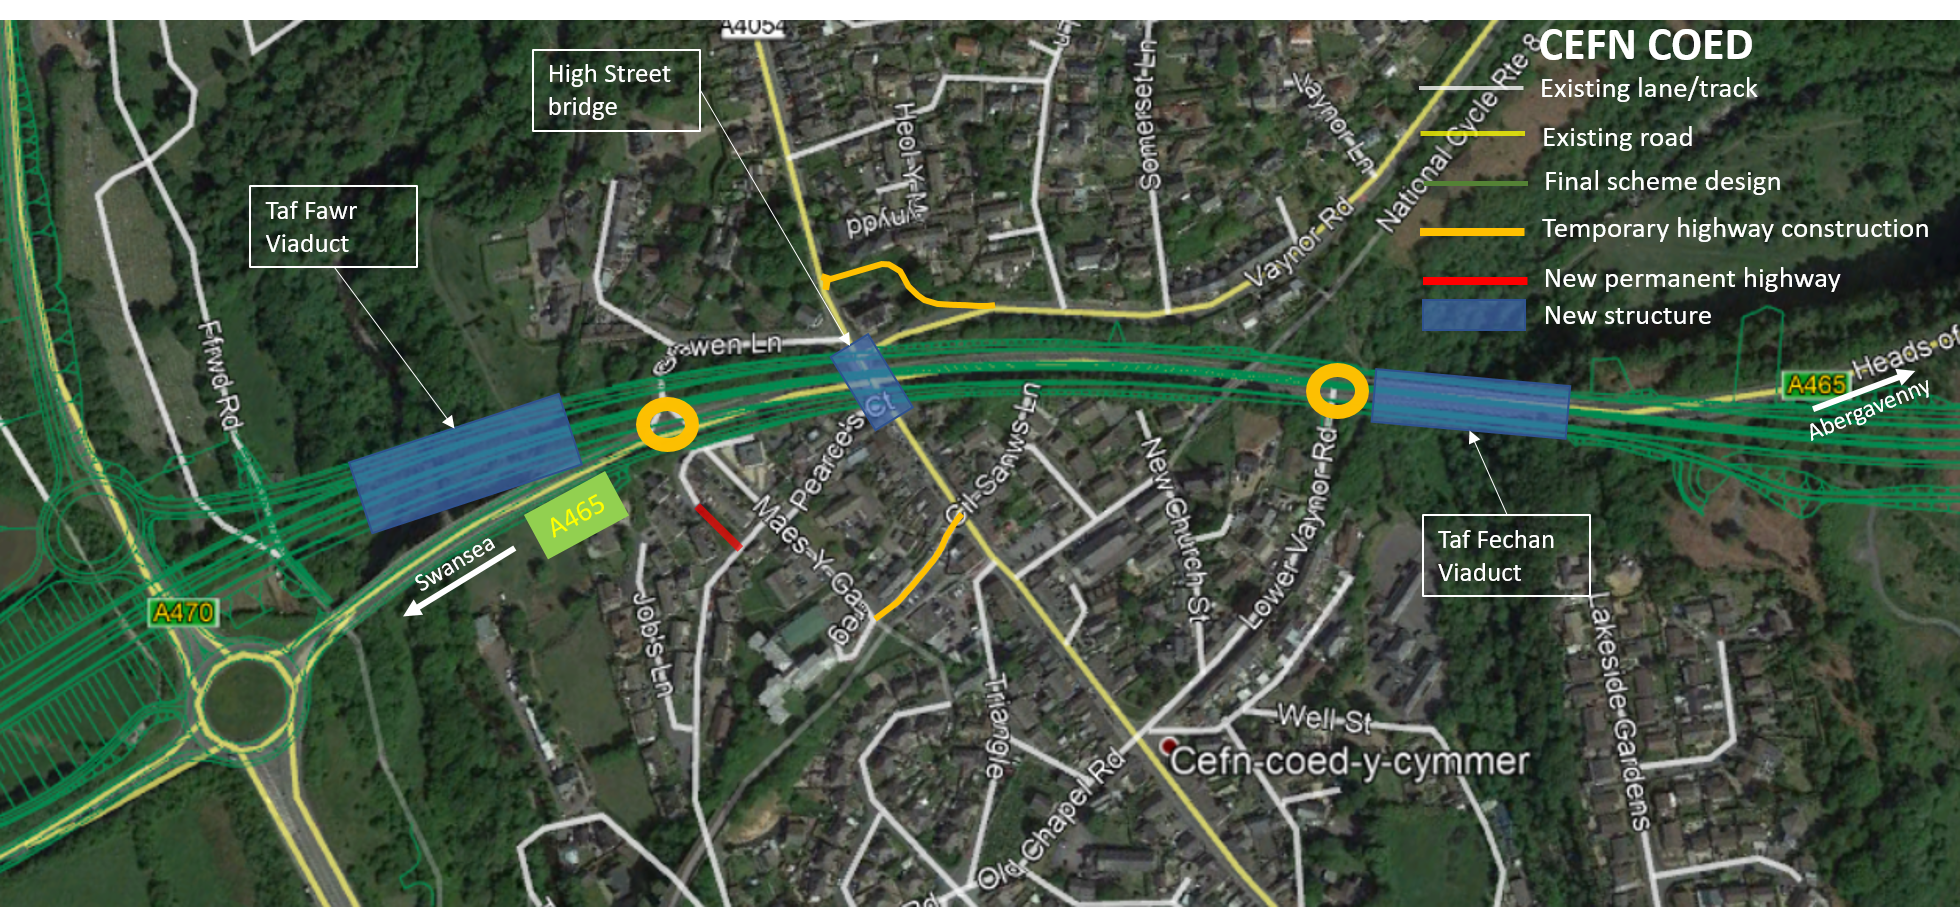 Satellite map showing changes to Cefn coed junction